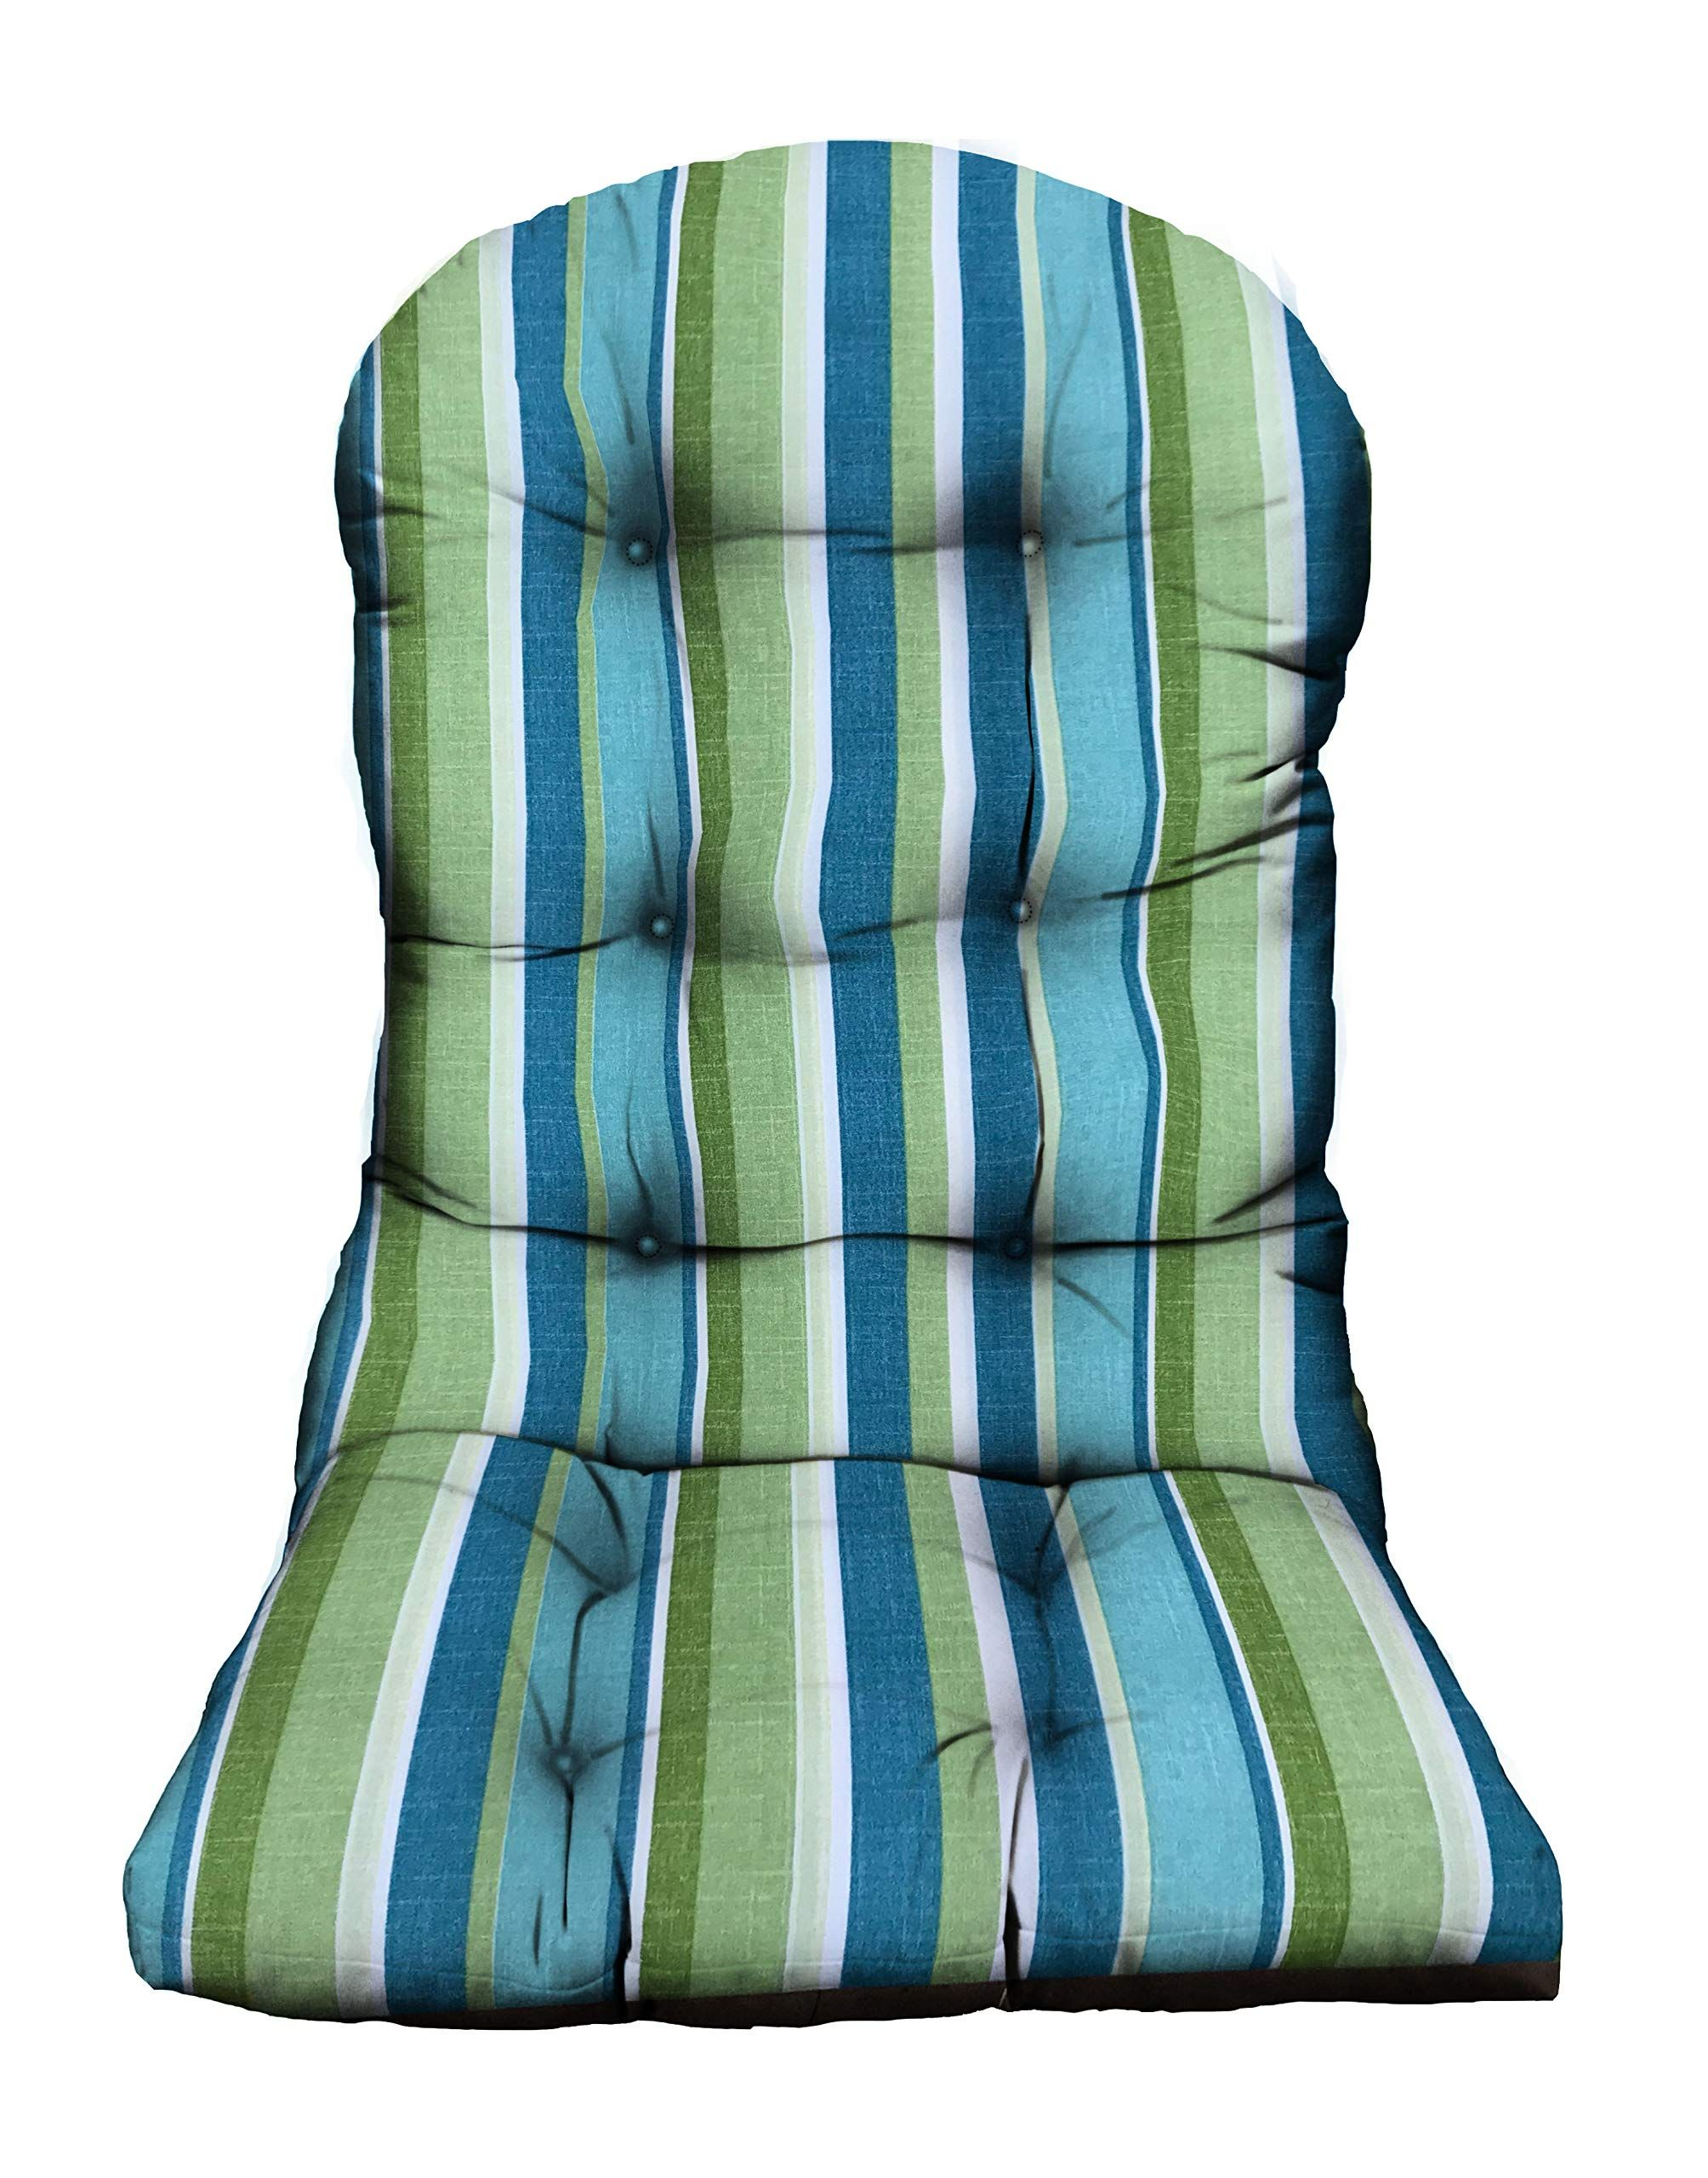 RSH Décor Indoor Outdoor Tufted Adirondack Chair Cushion